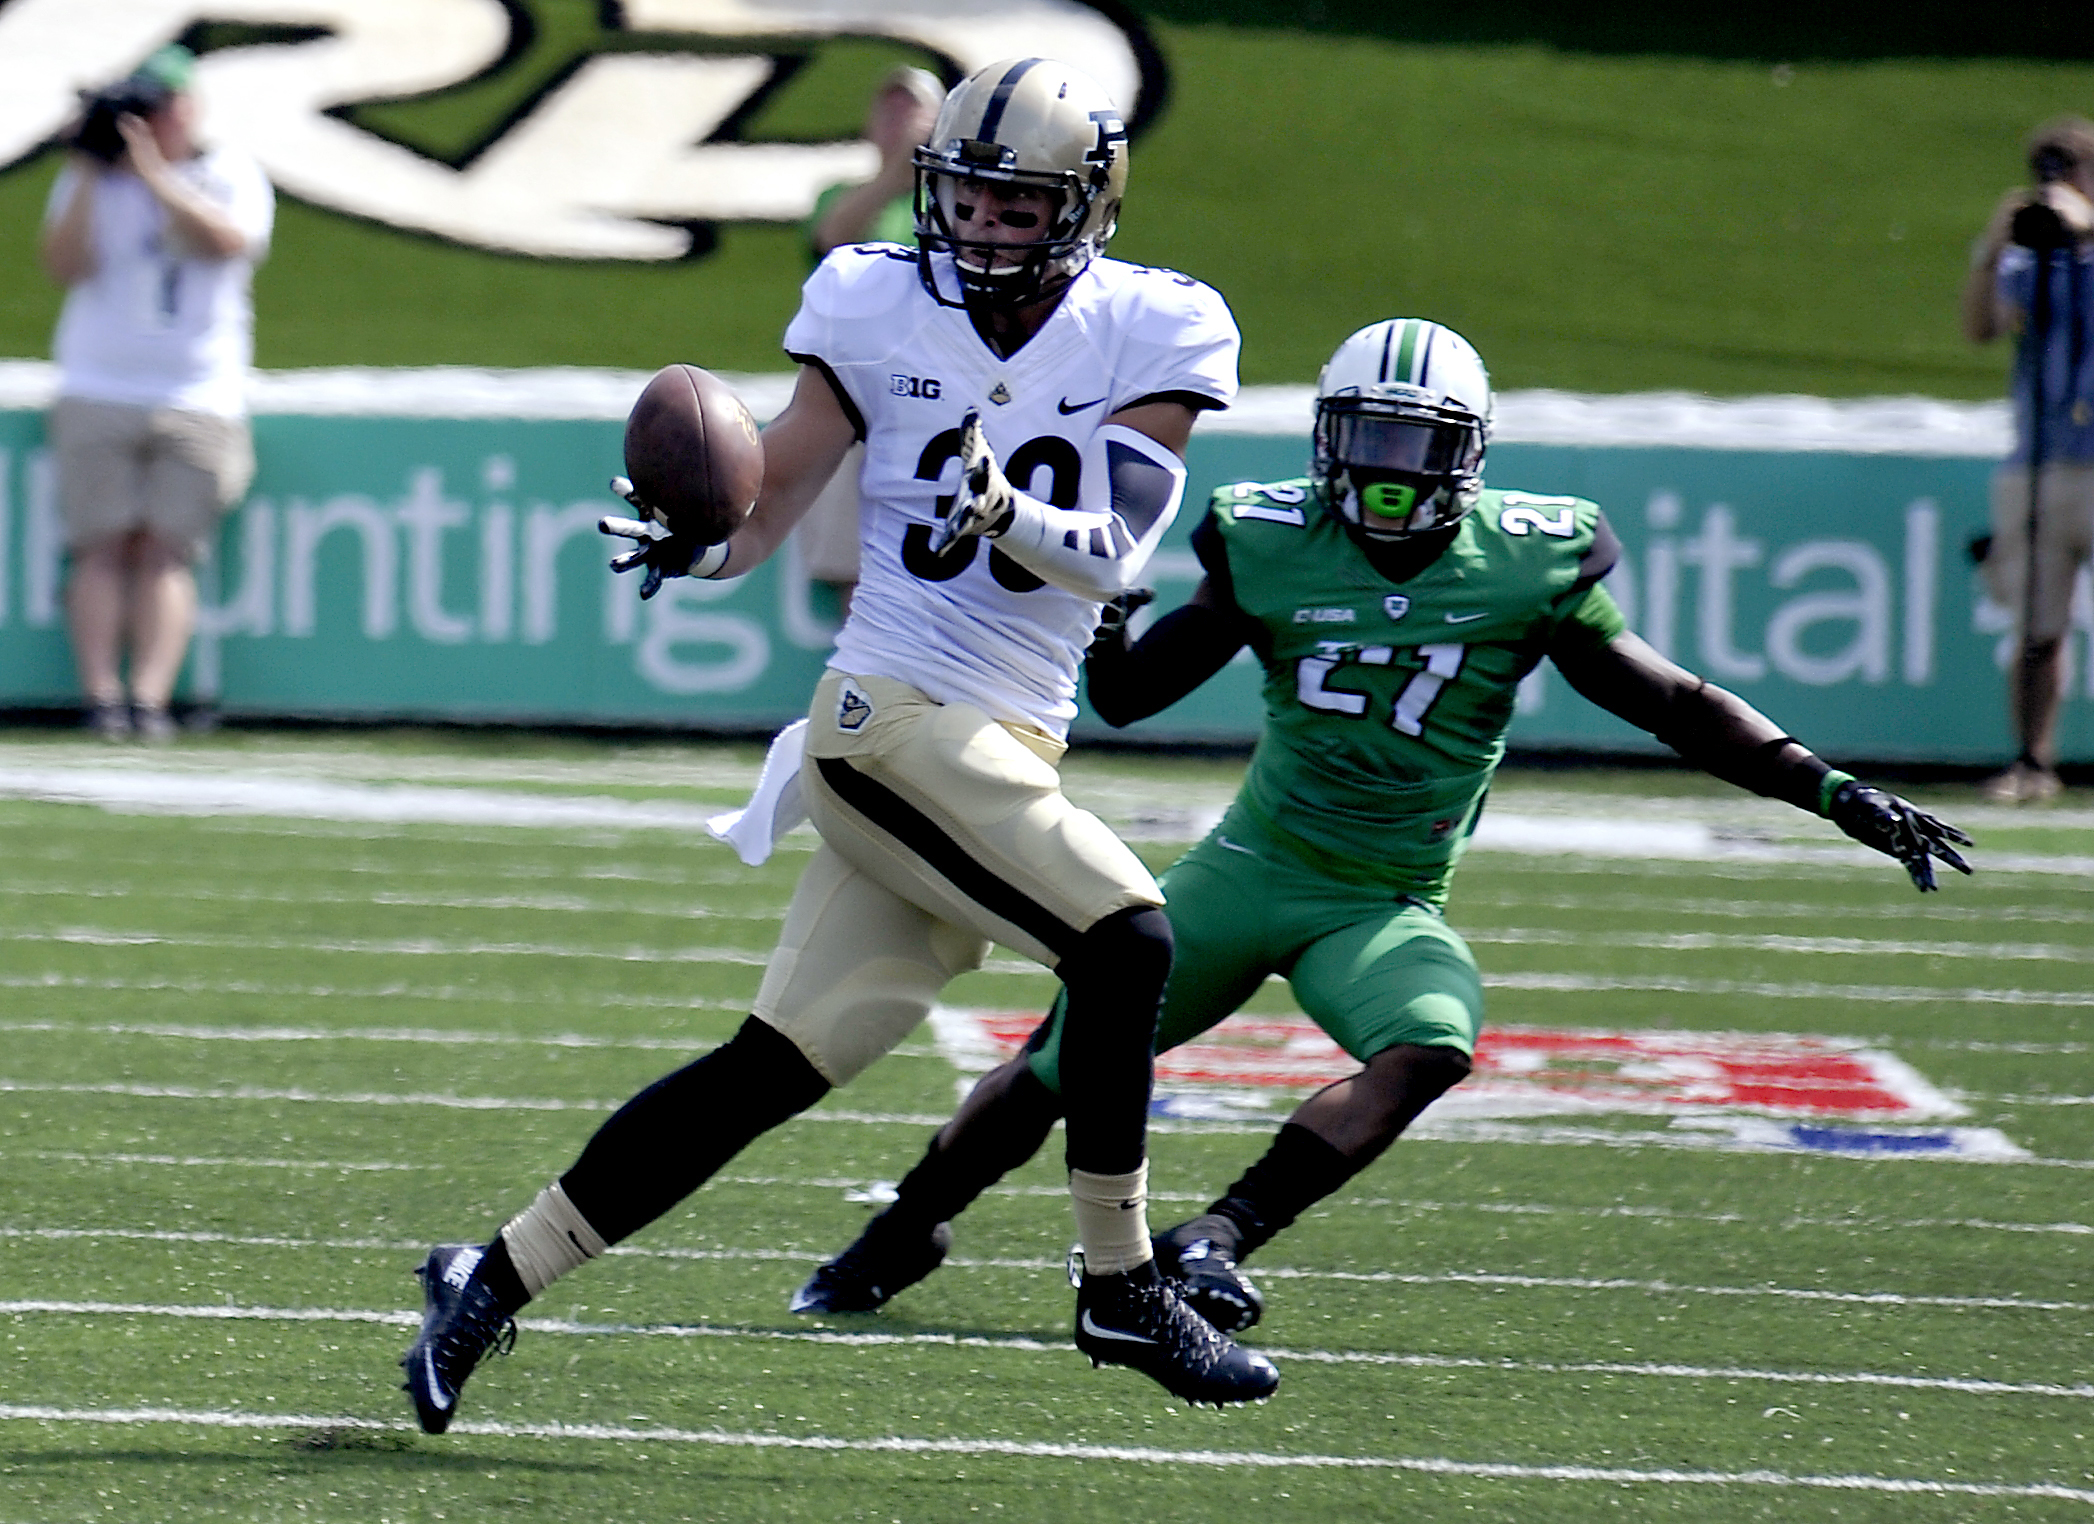 Purdue's Danny Anthrop (33) receives a pass with Marshall's Dejondre Coleman trying to defend the play during an NCAA football game in Huntington, W.Va., Sunday, Sept. 6, 2015. (AP Photo/Chris Tilley)